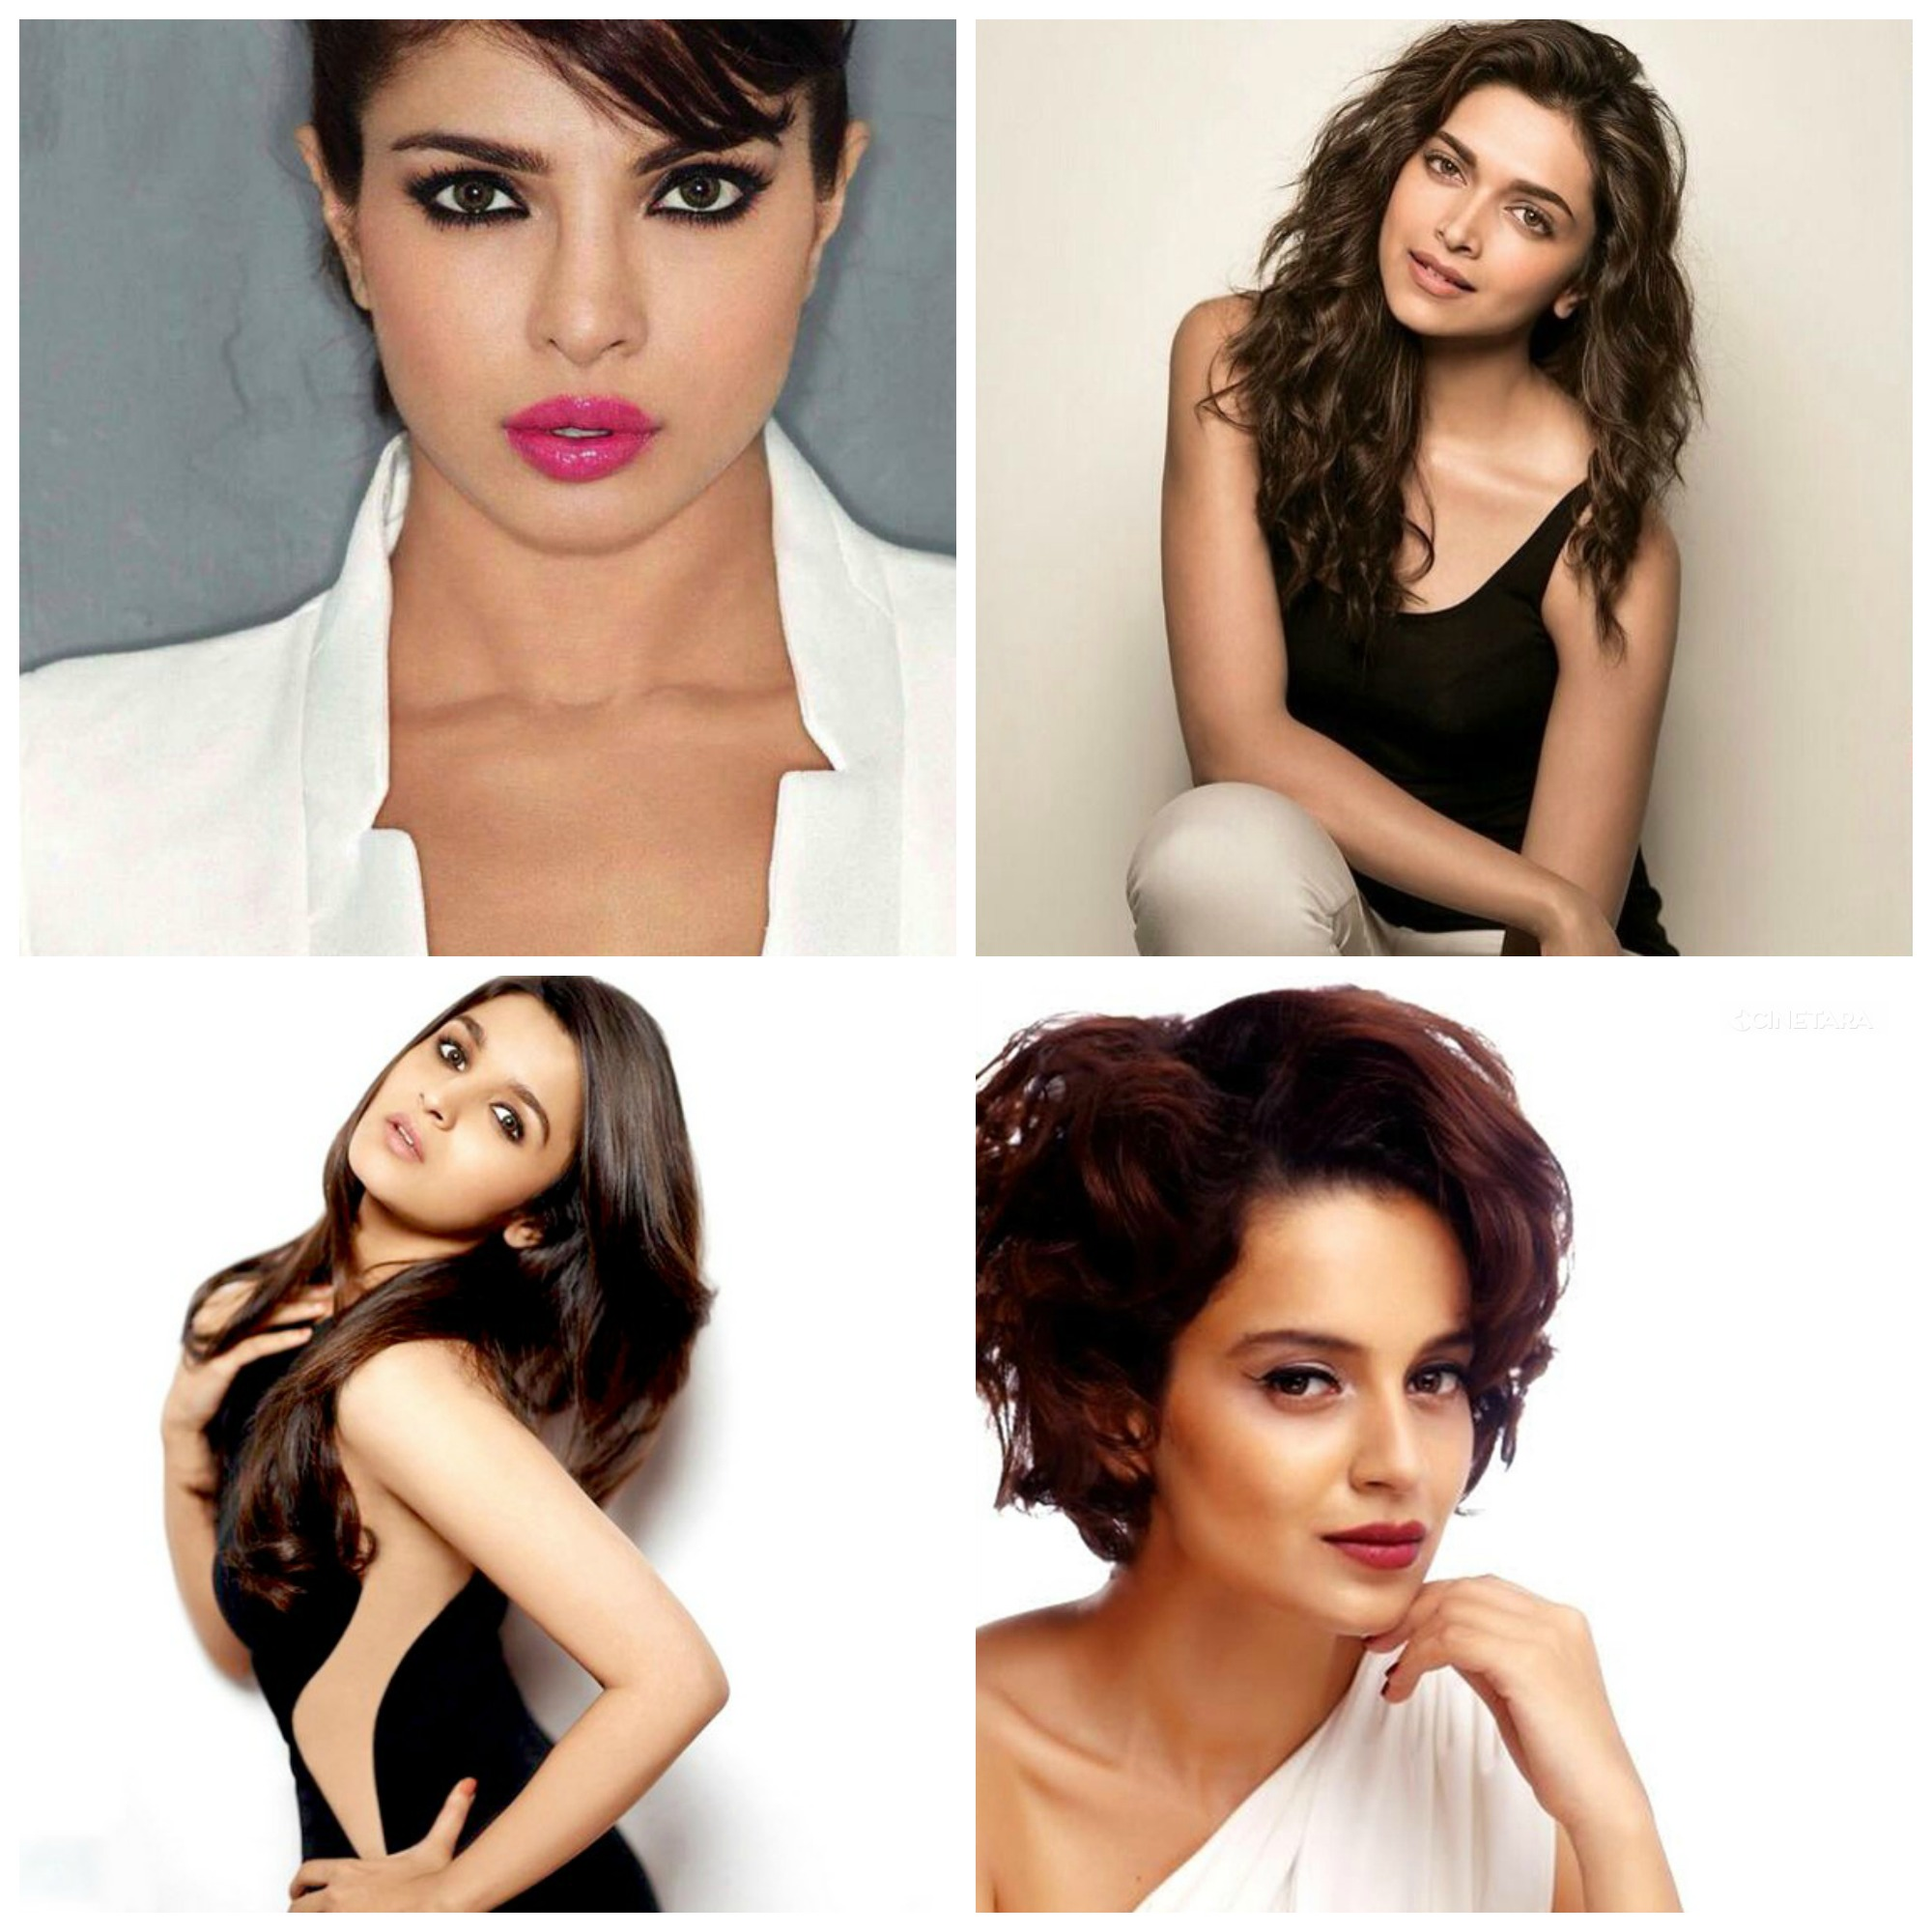 7 Bollywood Divas To Watch Out For In 2016